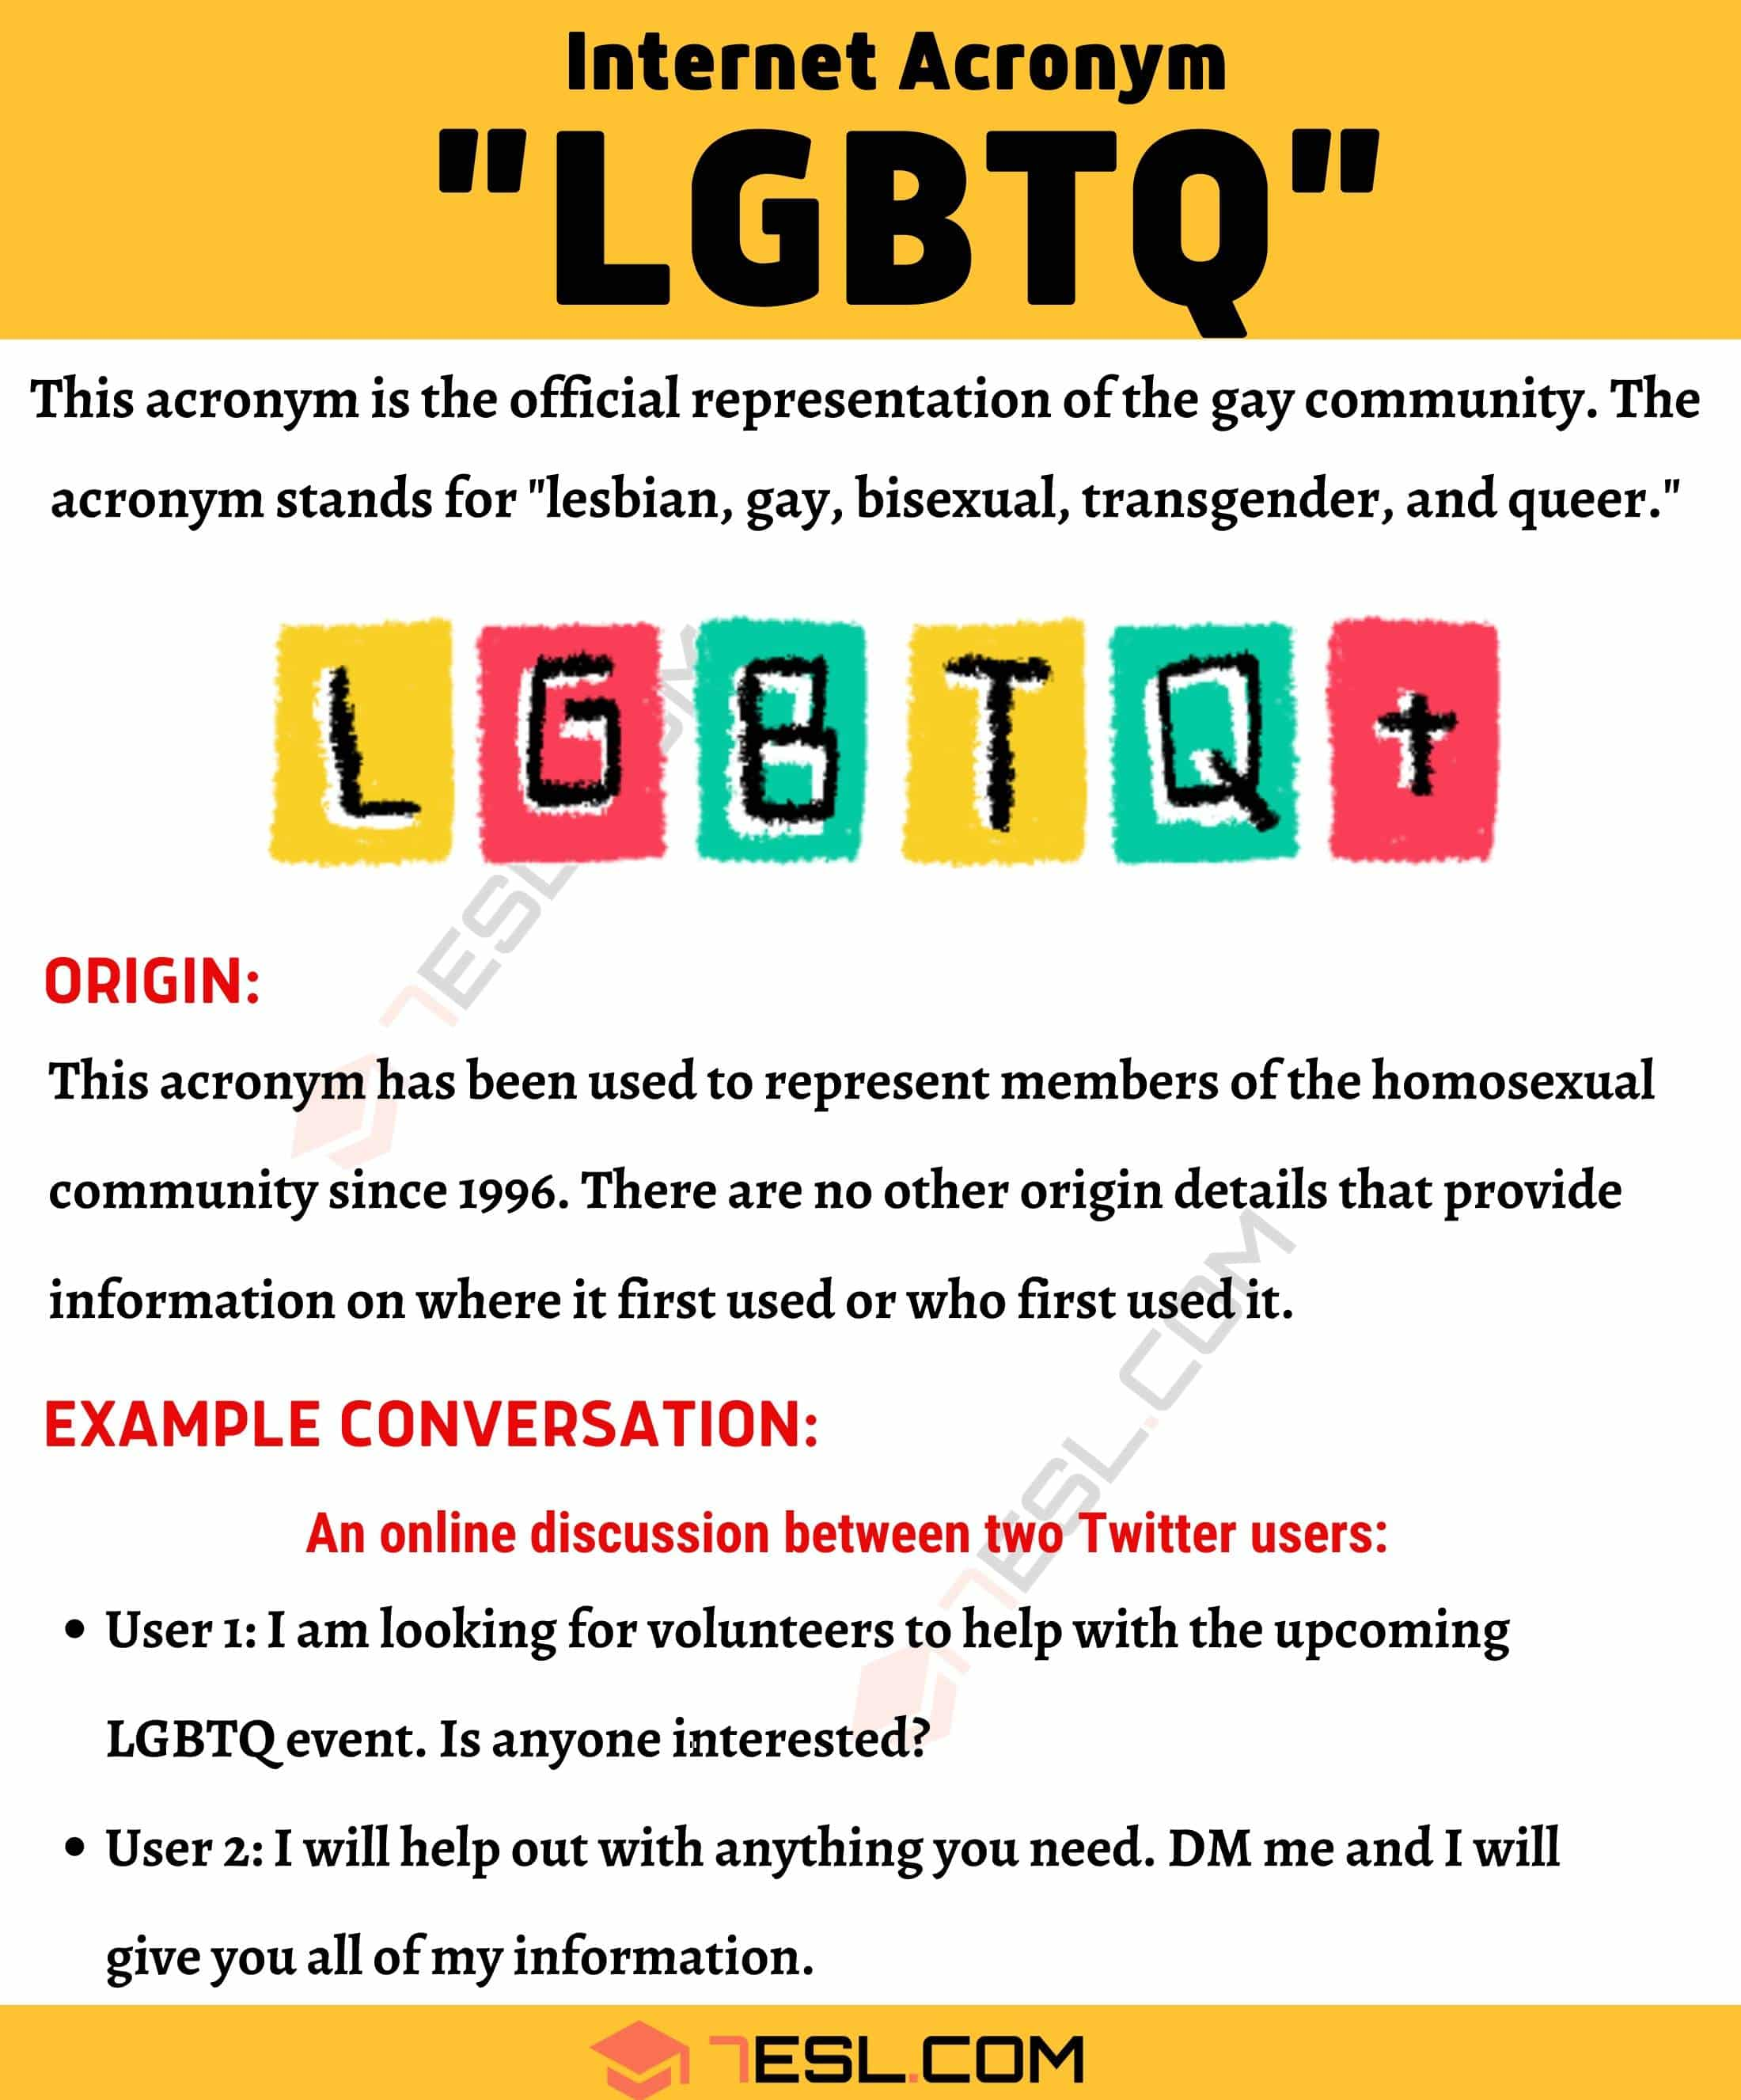 LGBTQ Meaning: What in The World Does This Popular Acronym Mean?